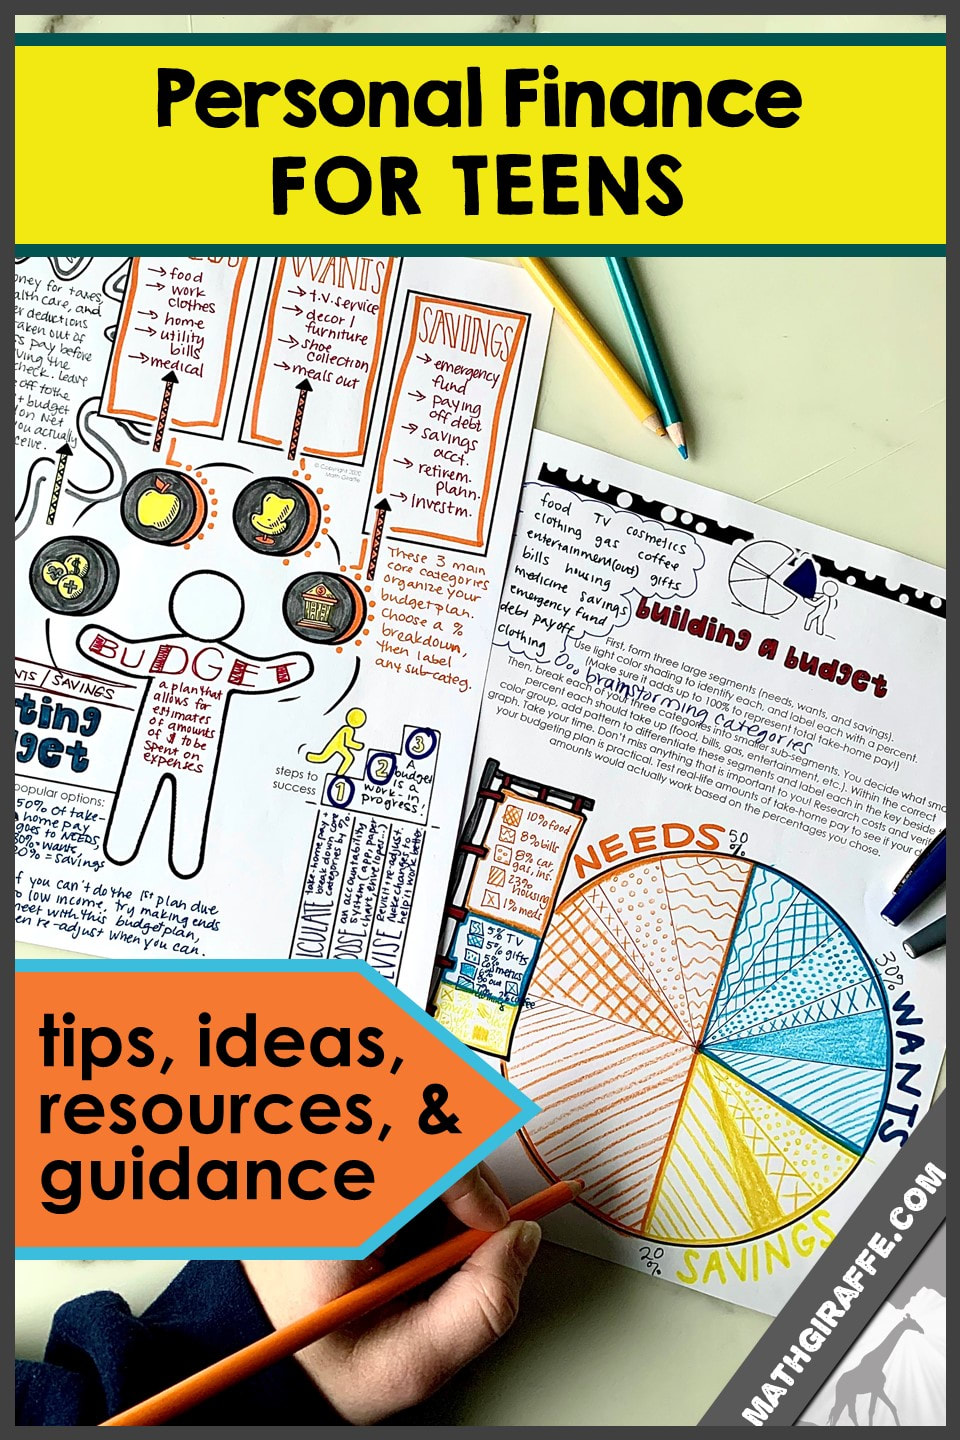 Teaching Personal Finance to Teens - Tips and Resources for Financial Literacy